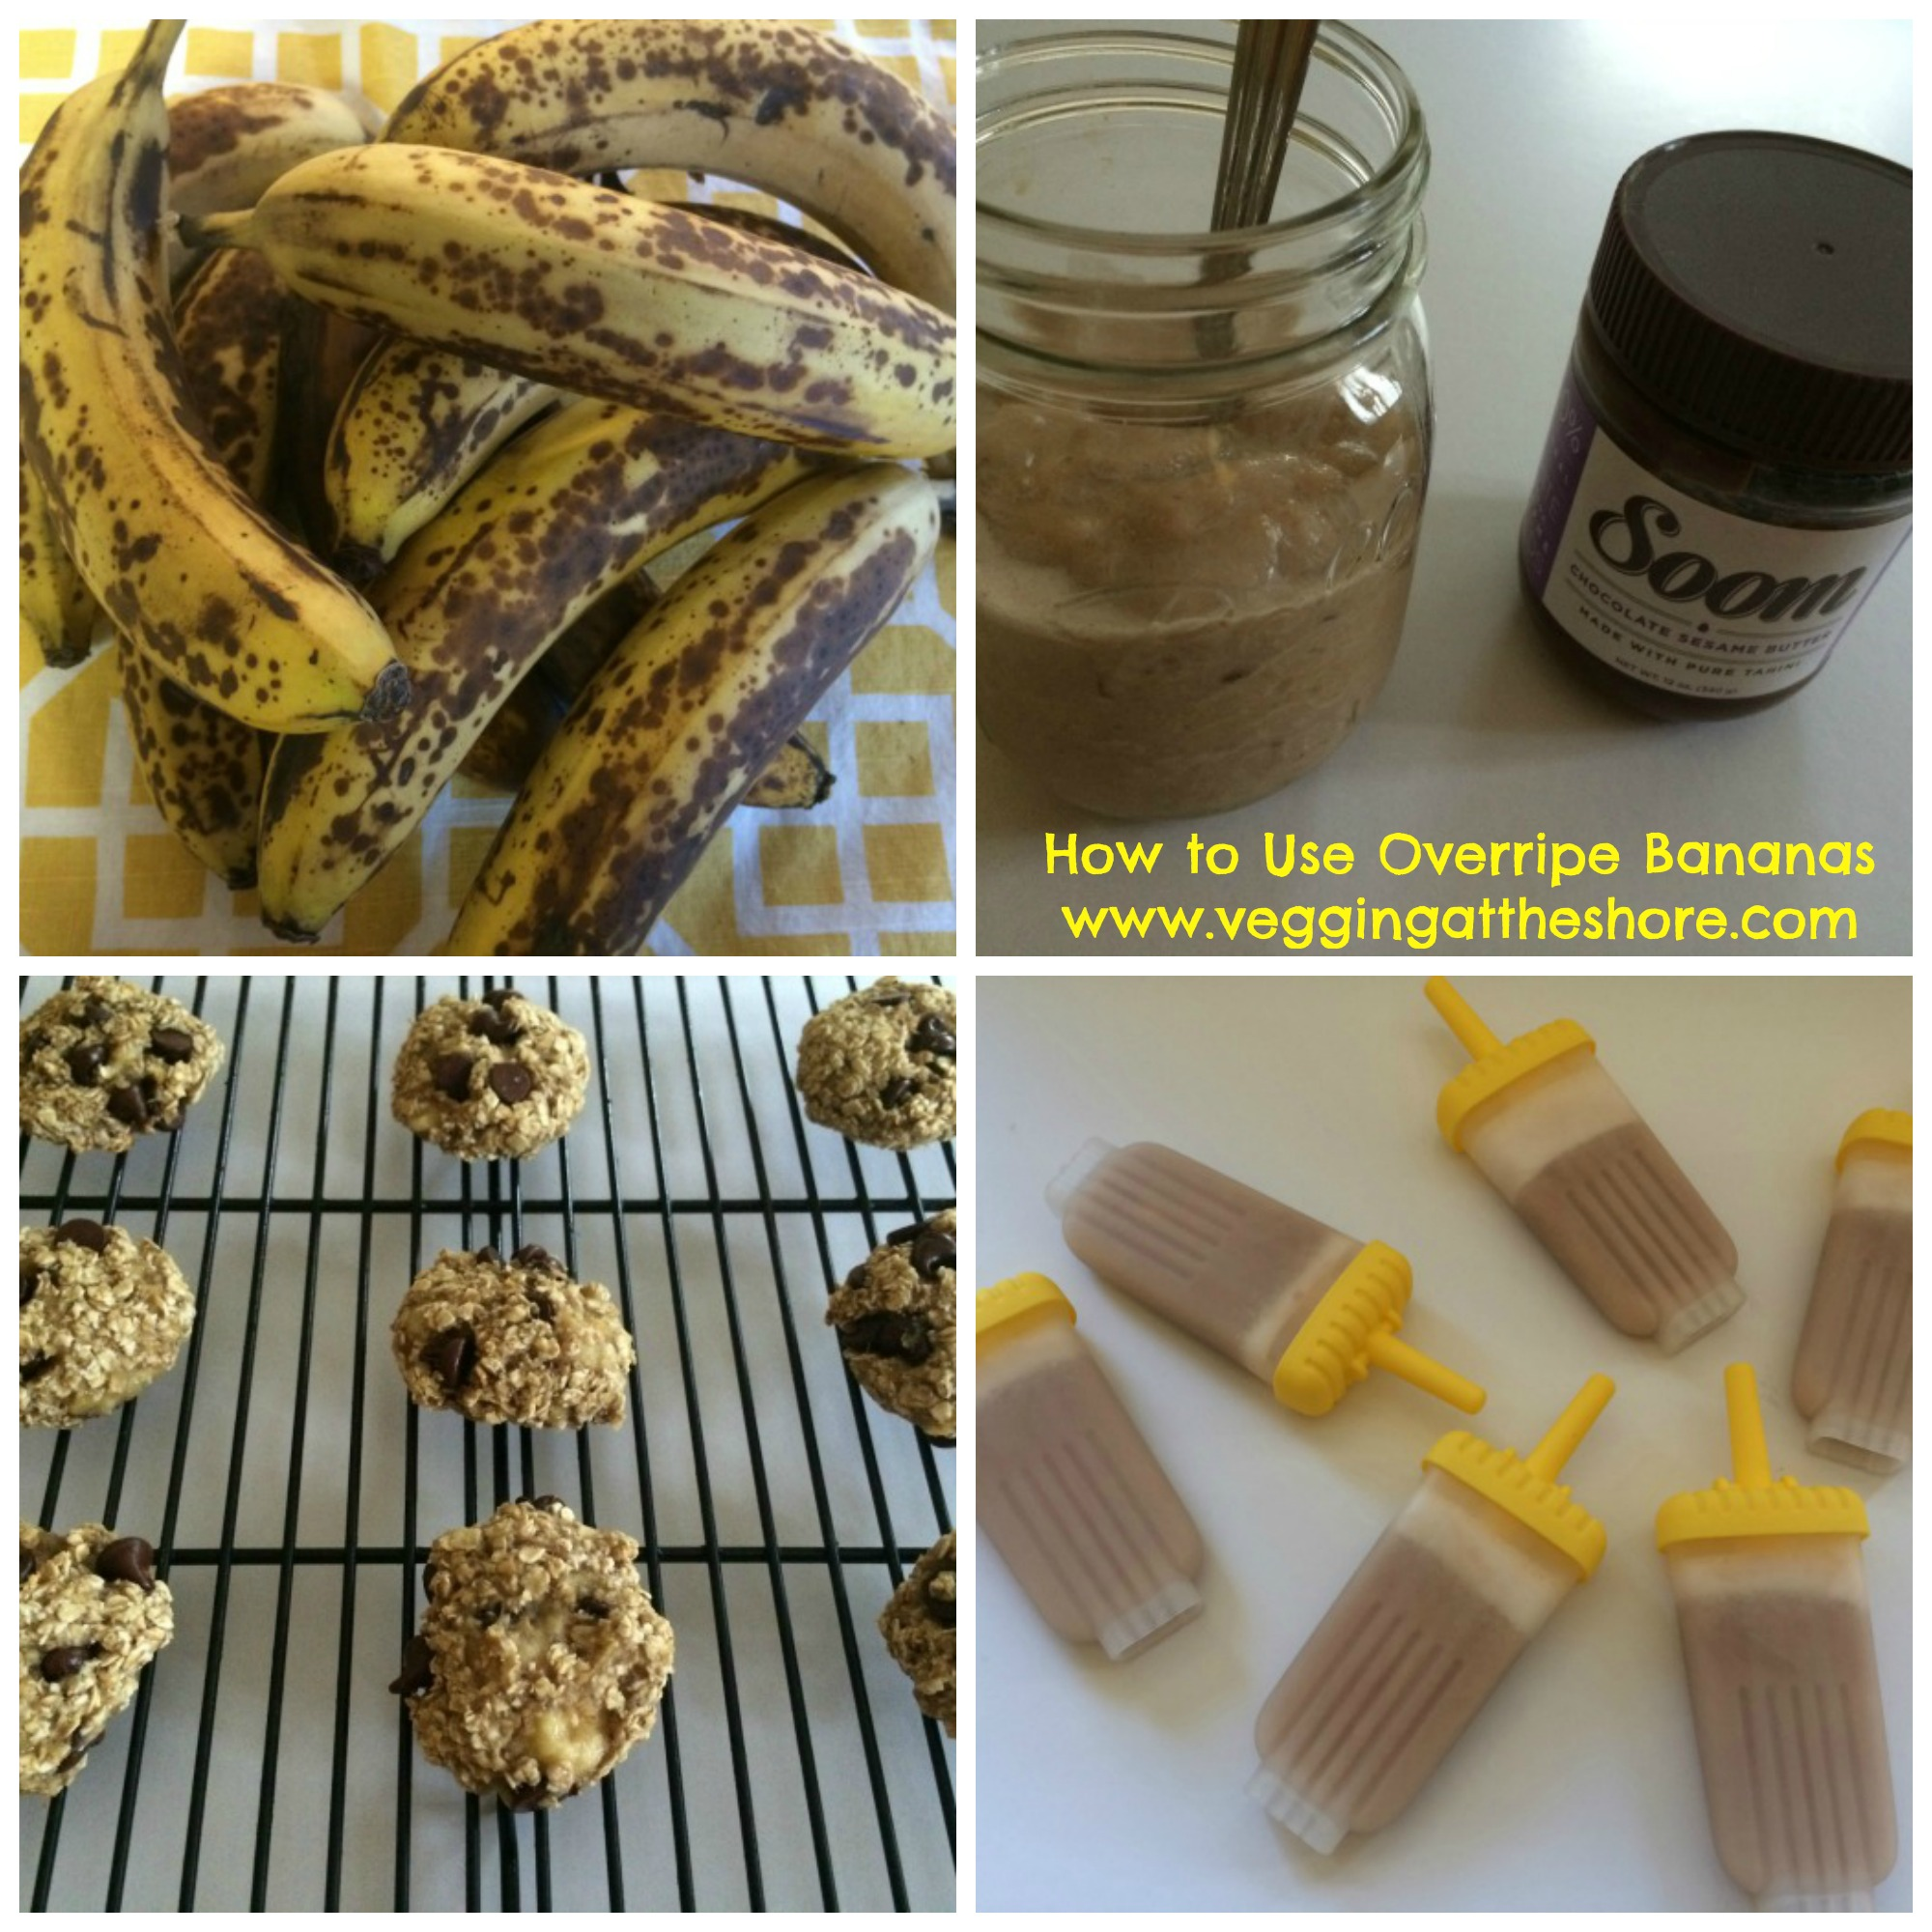 How to Use Overripe Bananas